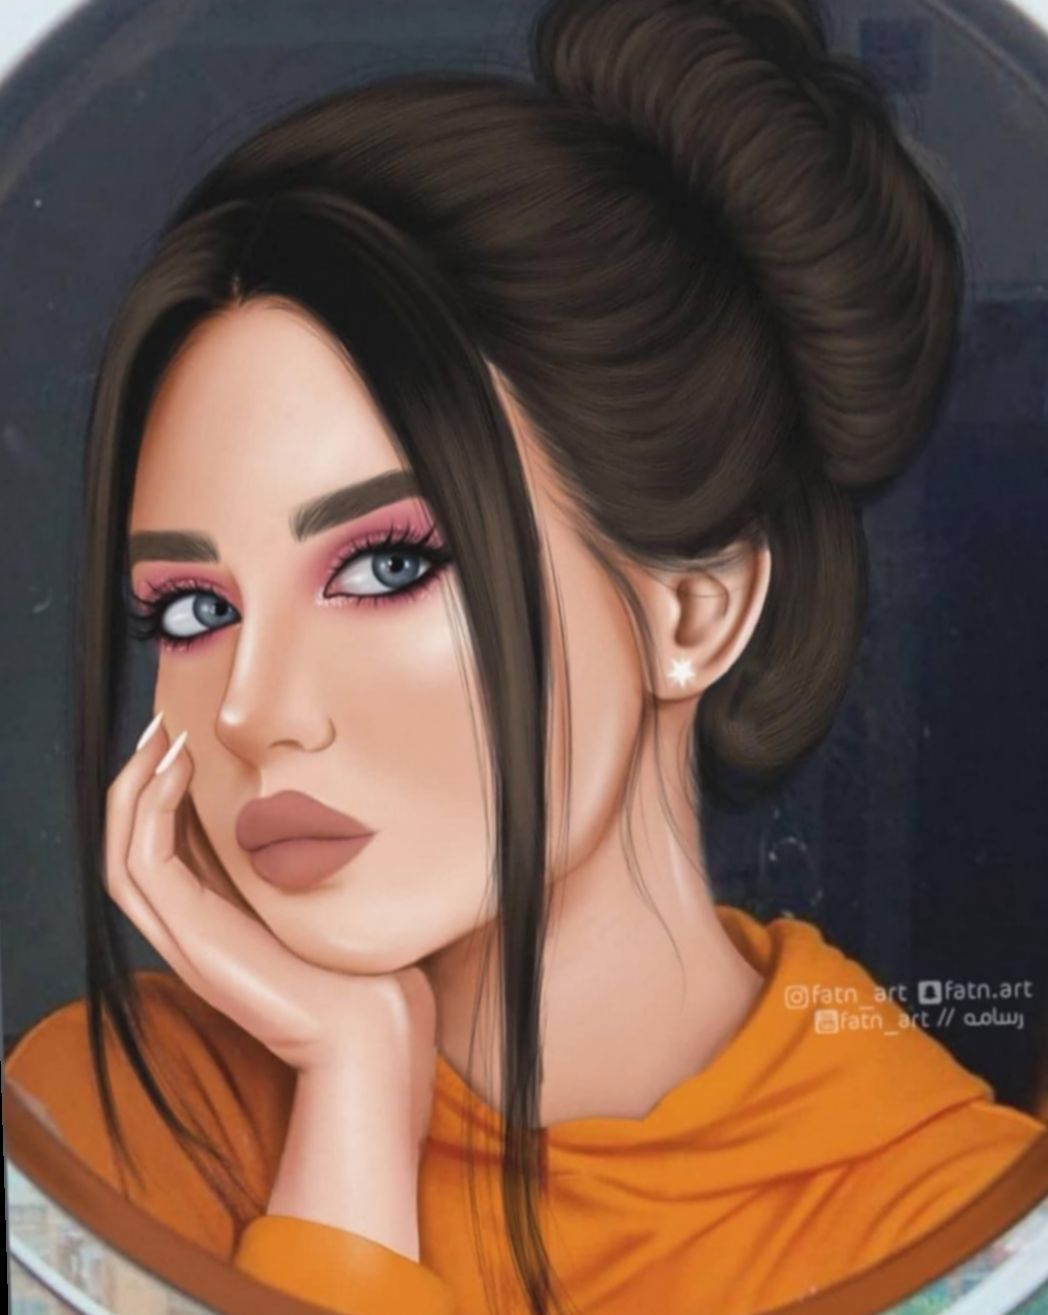 18 Anime Face Girl Pictures Beautiful Girl Drawing Cartoon Girl Images Girl Pictures